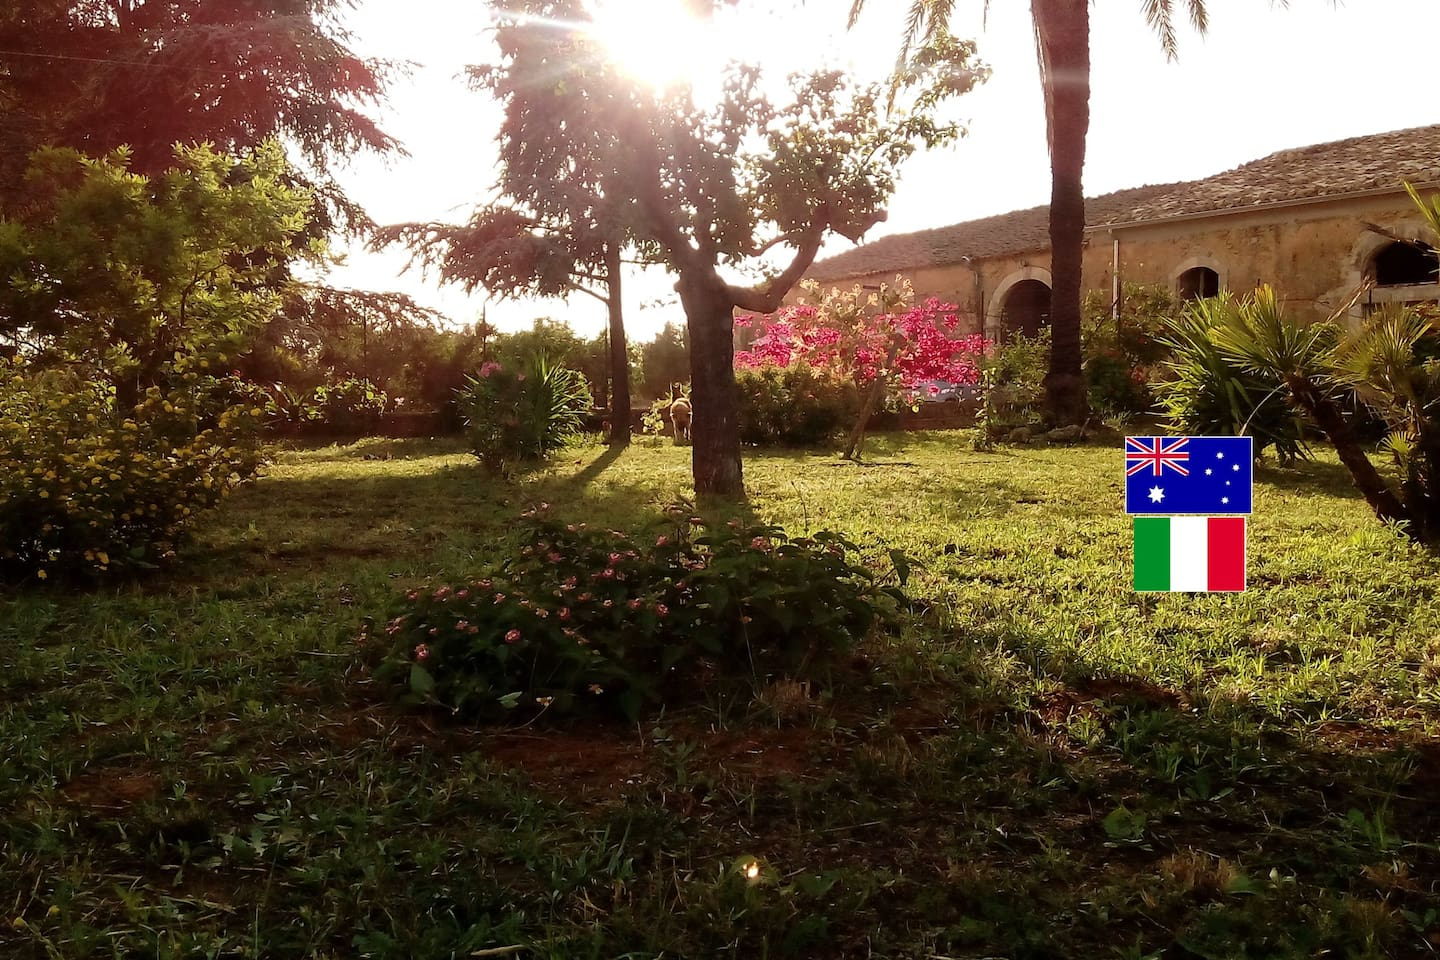 Olive Grove Relax 6km from Comiso airport, Sicily - Guesthouses for ...